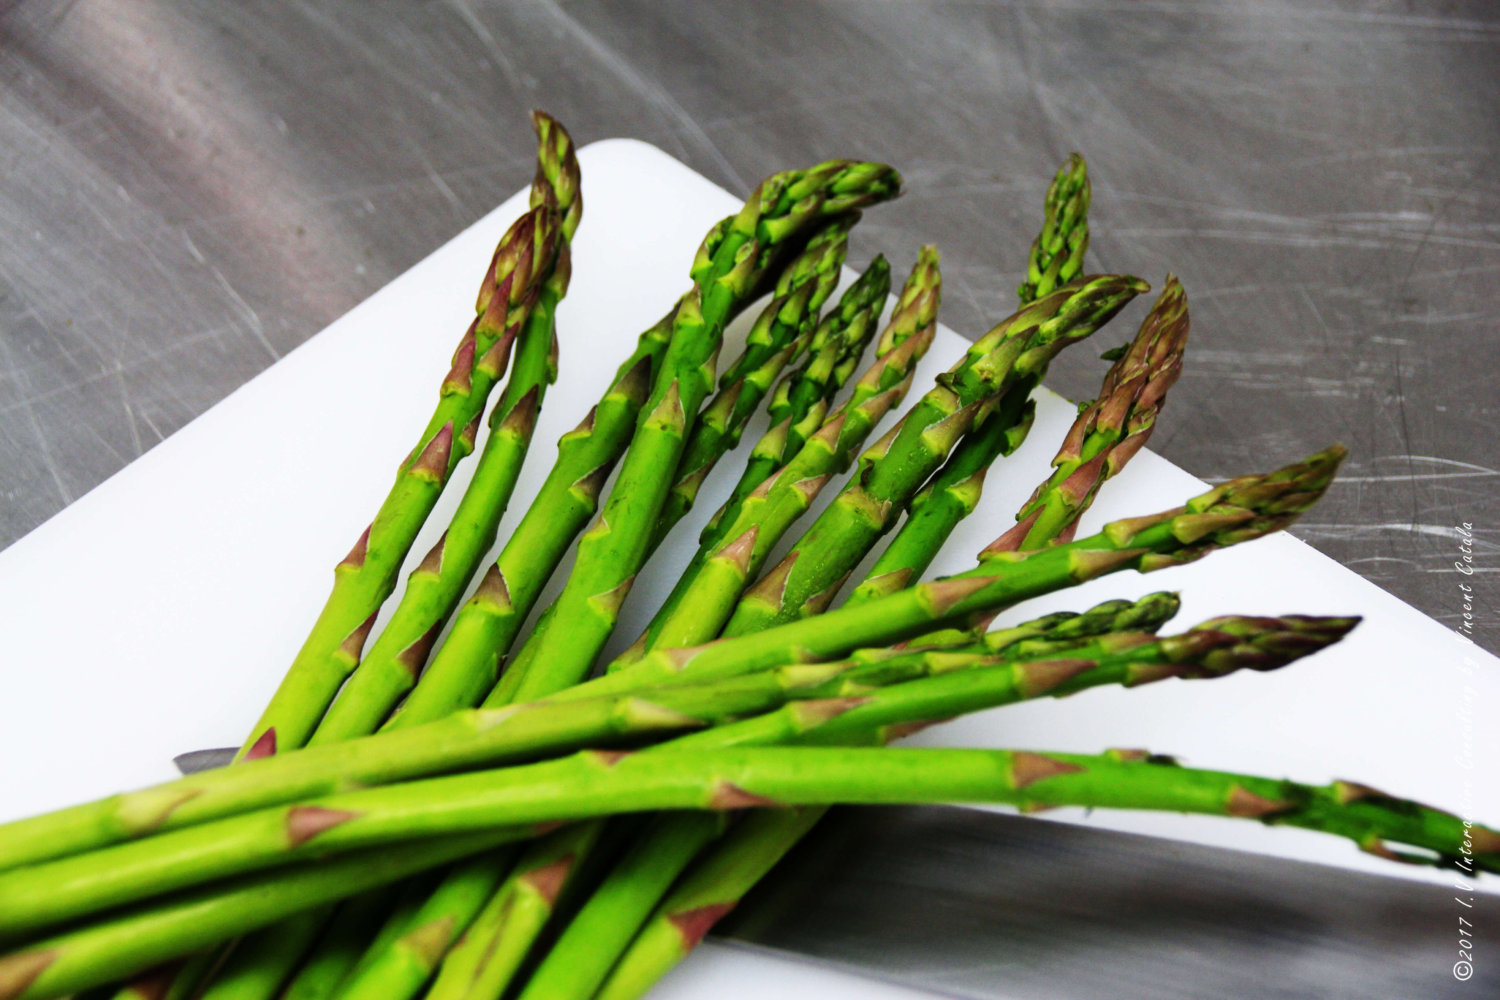 Asperges - asparagus by Vincent Catala Chef Pâtissier & Cuisinier French Private Cuisine & Pastry Chef - Catering in Miami